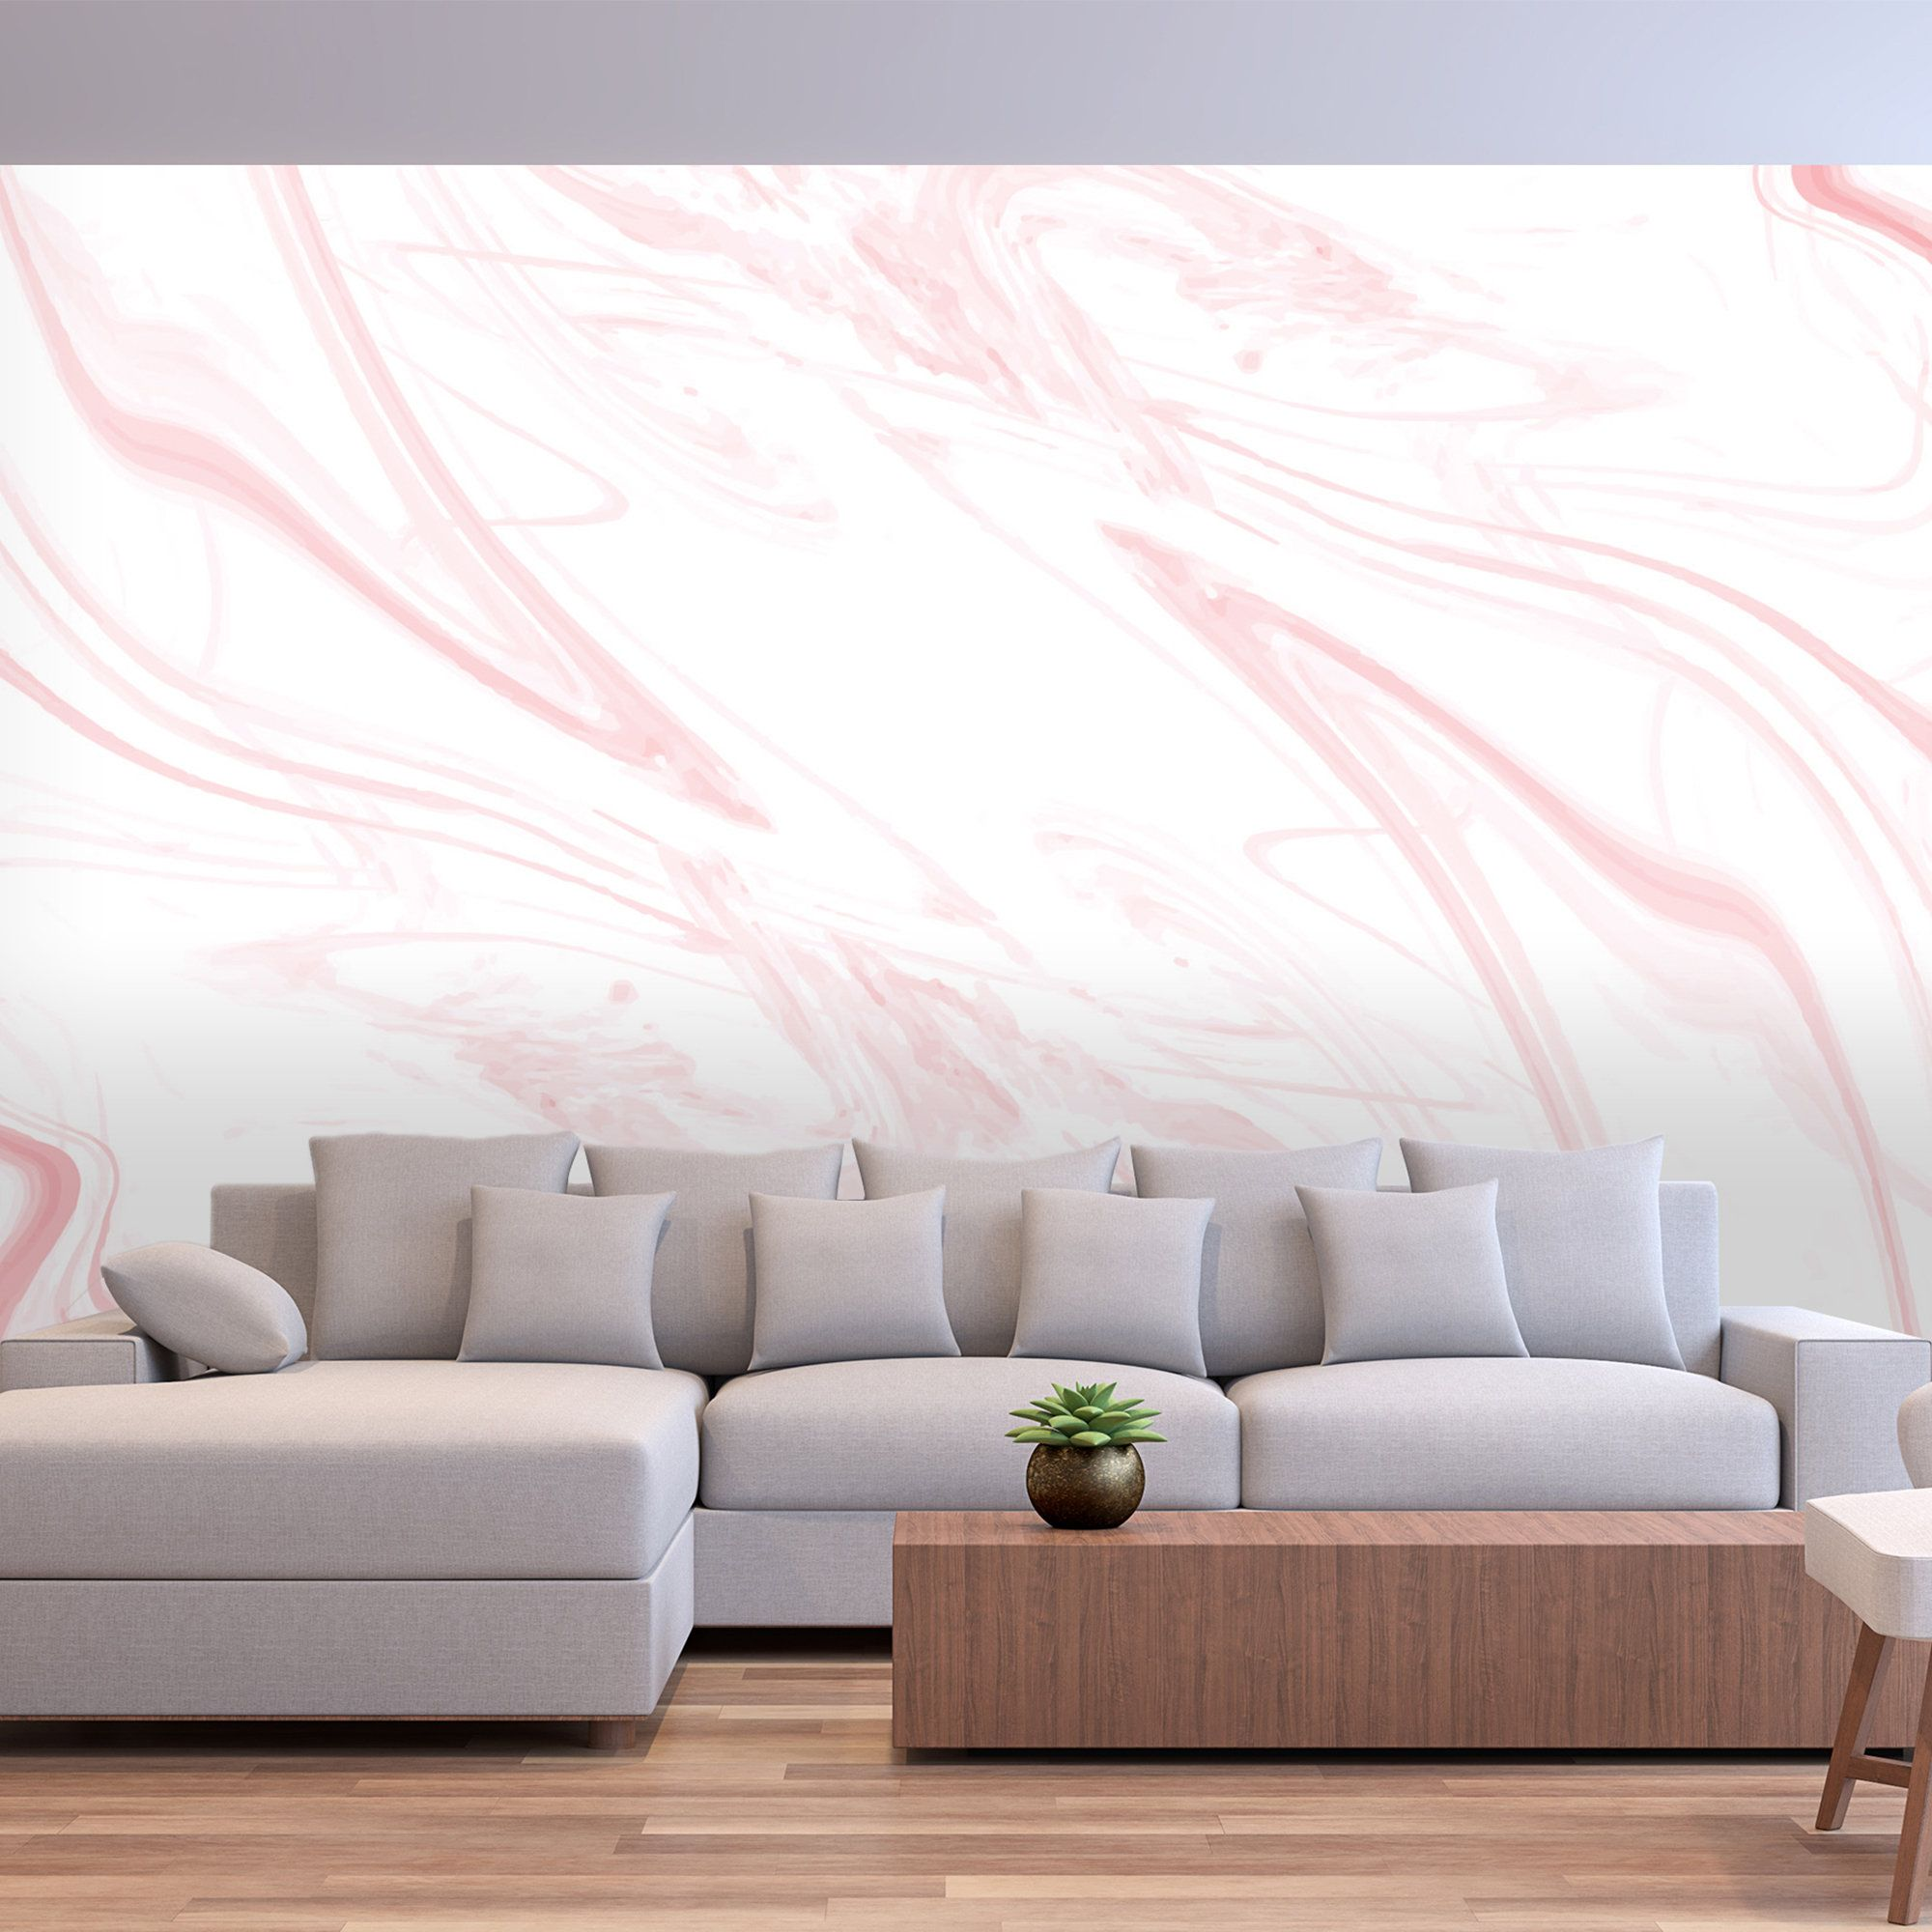 Blush Marble Removable Wallpaper Custom Printed Decorative Etsy In 2020 Removable Wallpaper Marble Decor Wallpaper Pink And White